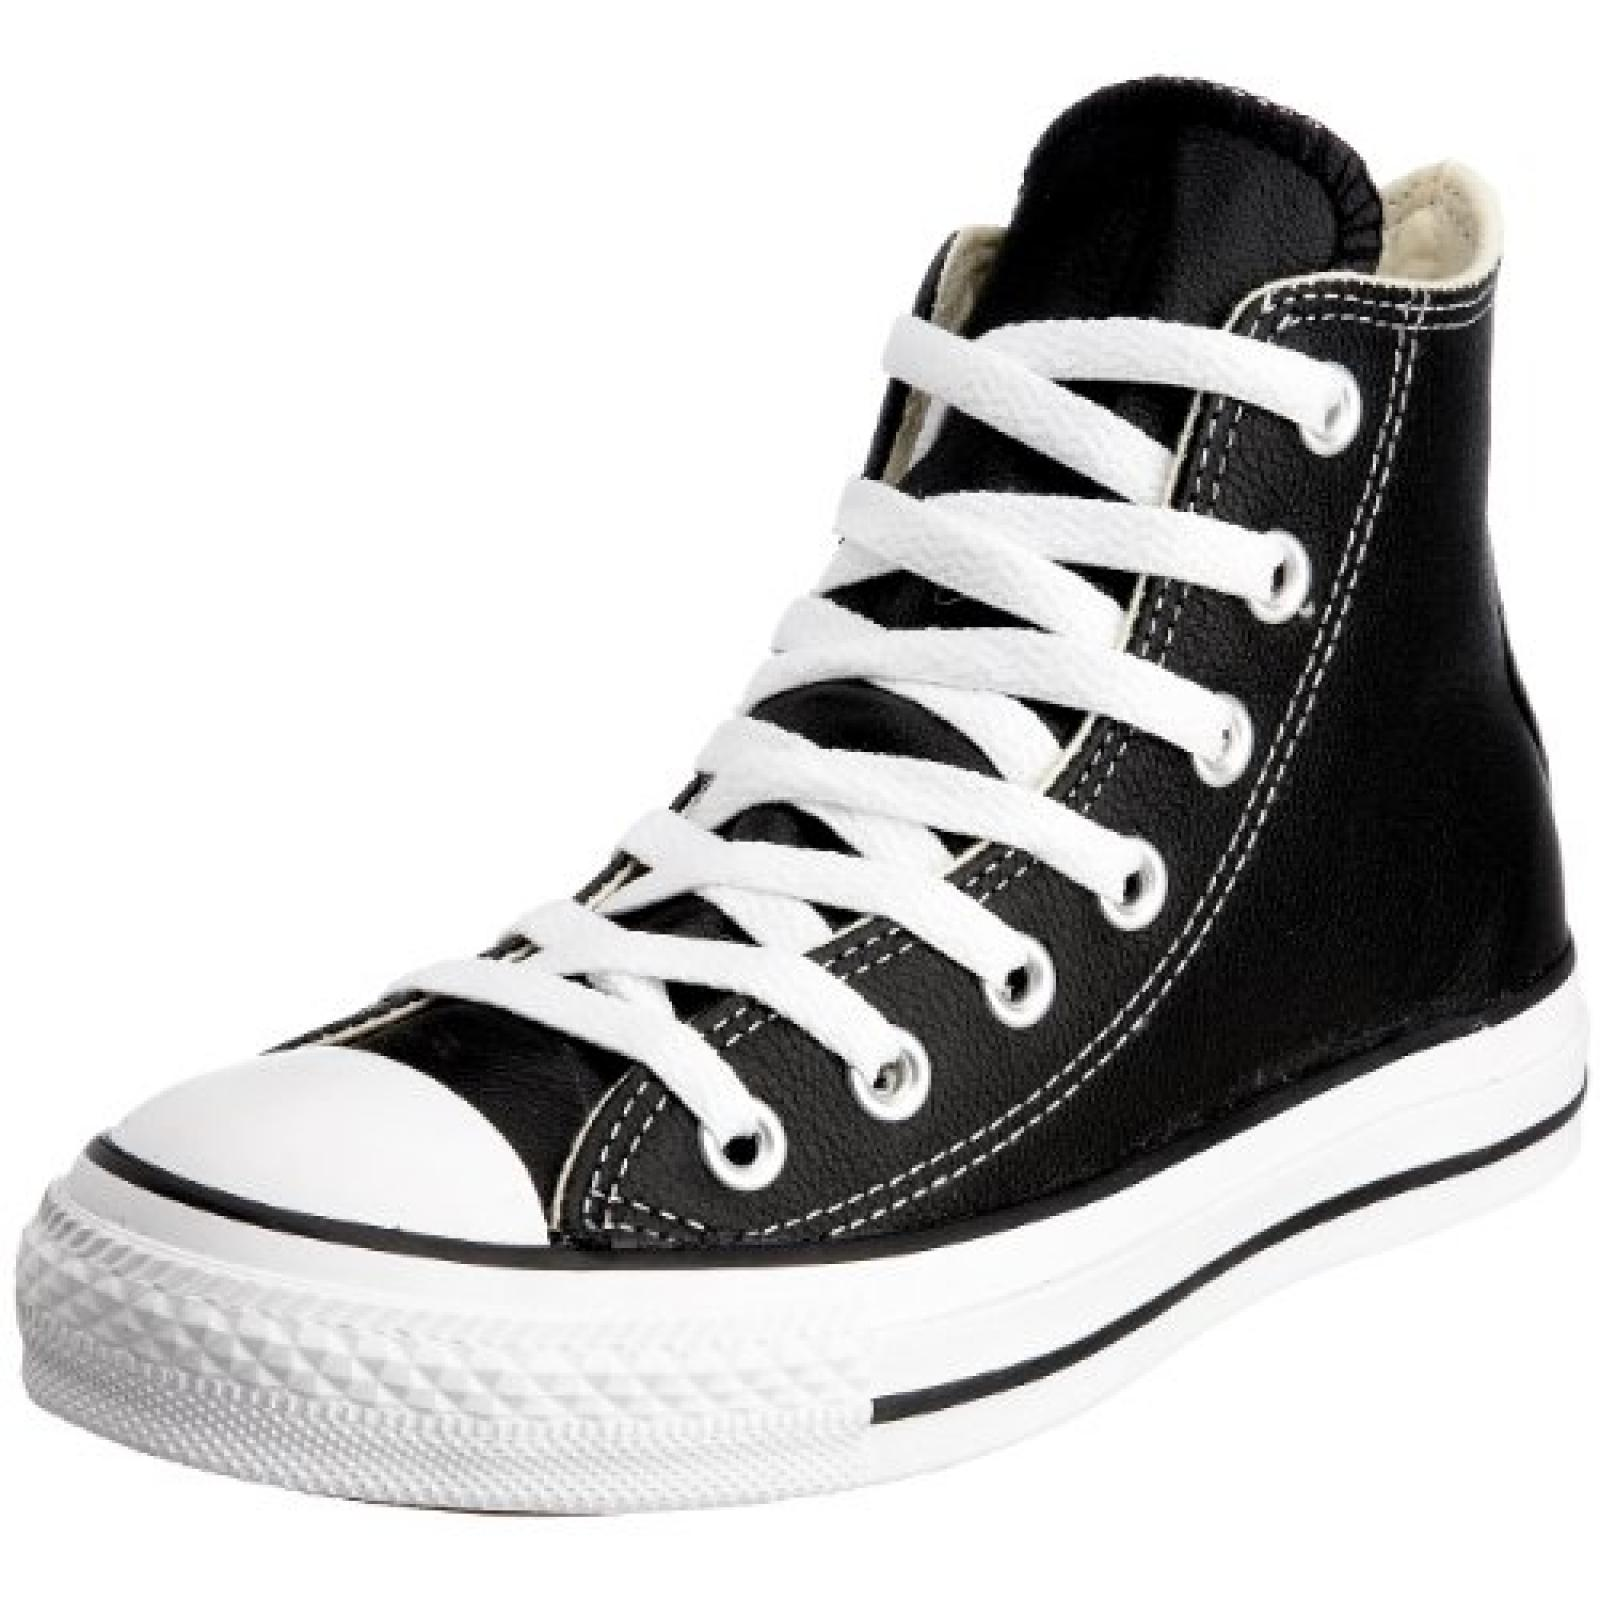 Converse Leather All Star, Unisex - Erwachsene Sneaker